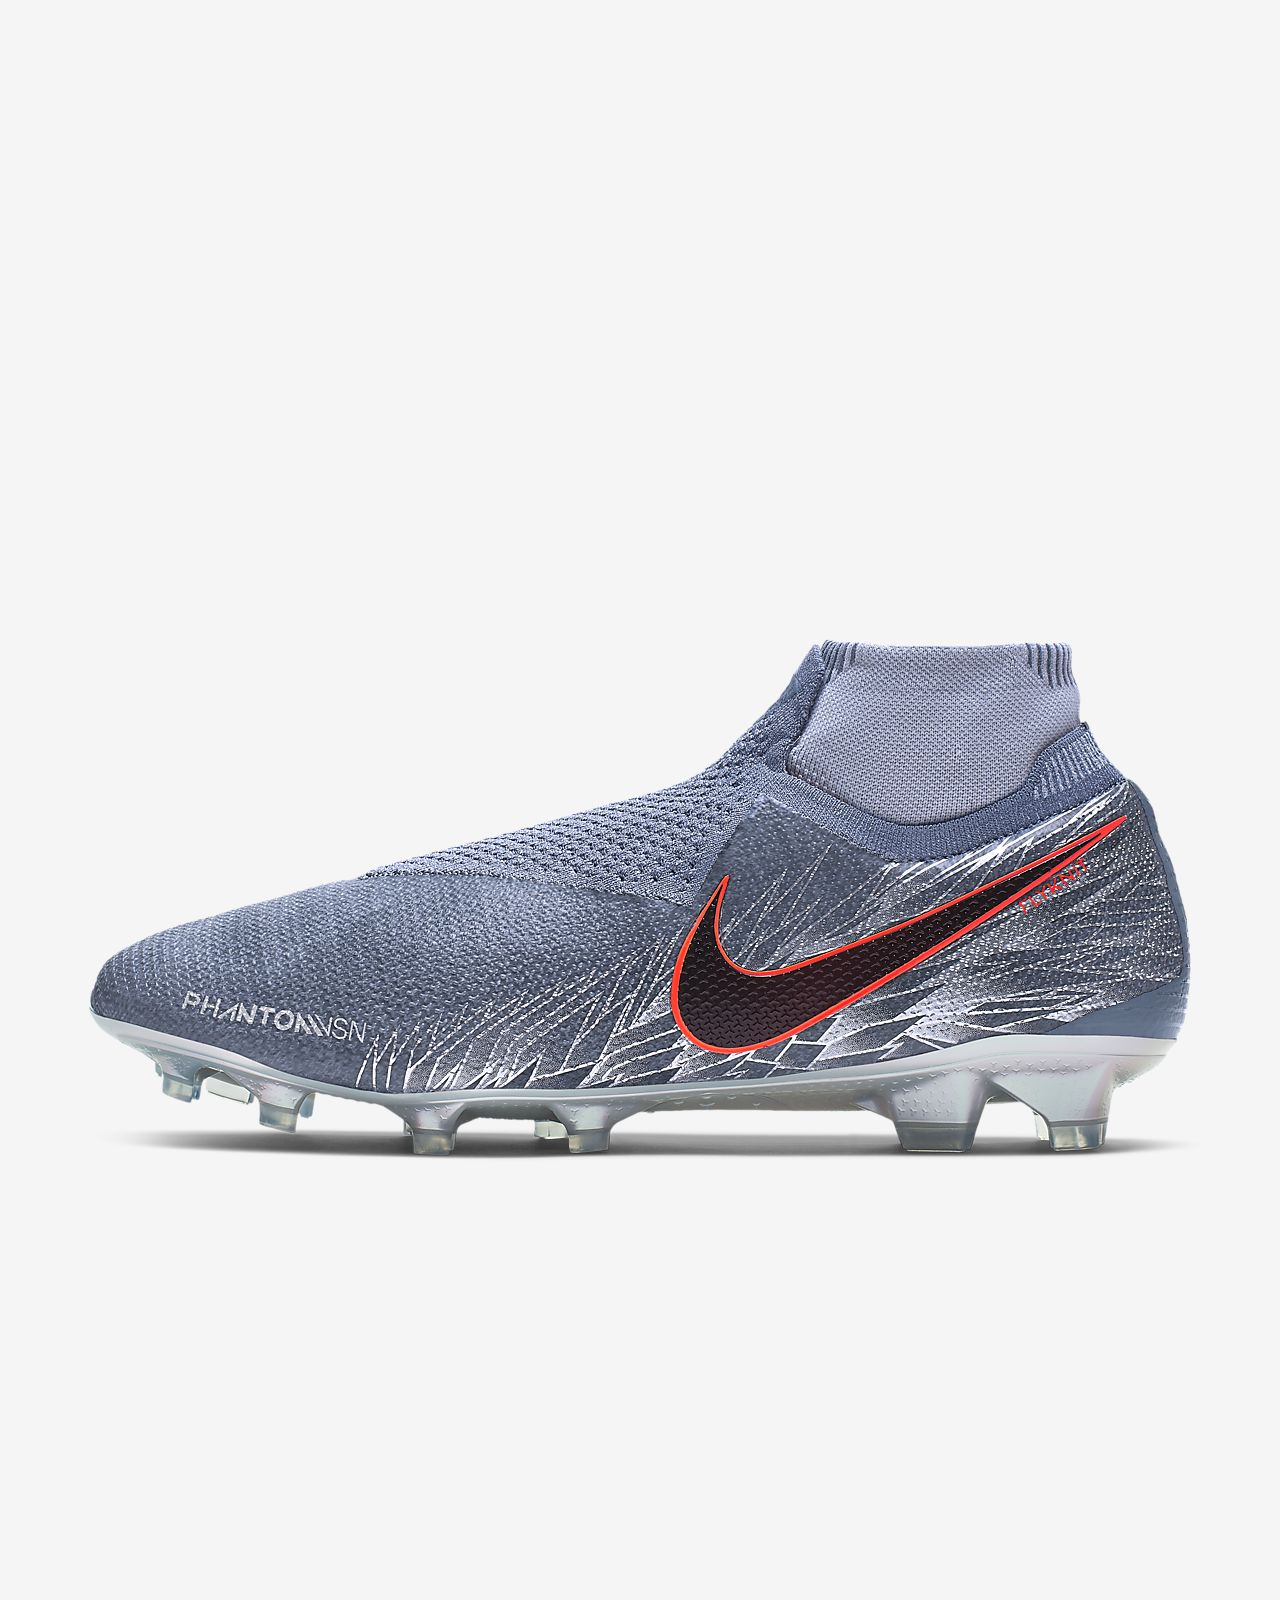 Nike Phantom Vision Elite Dynamic Fit FG fotballsko til gress